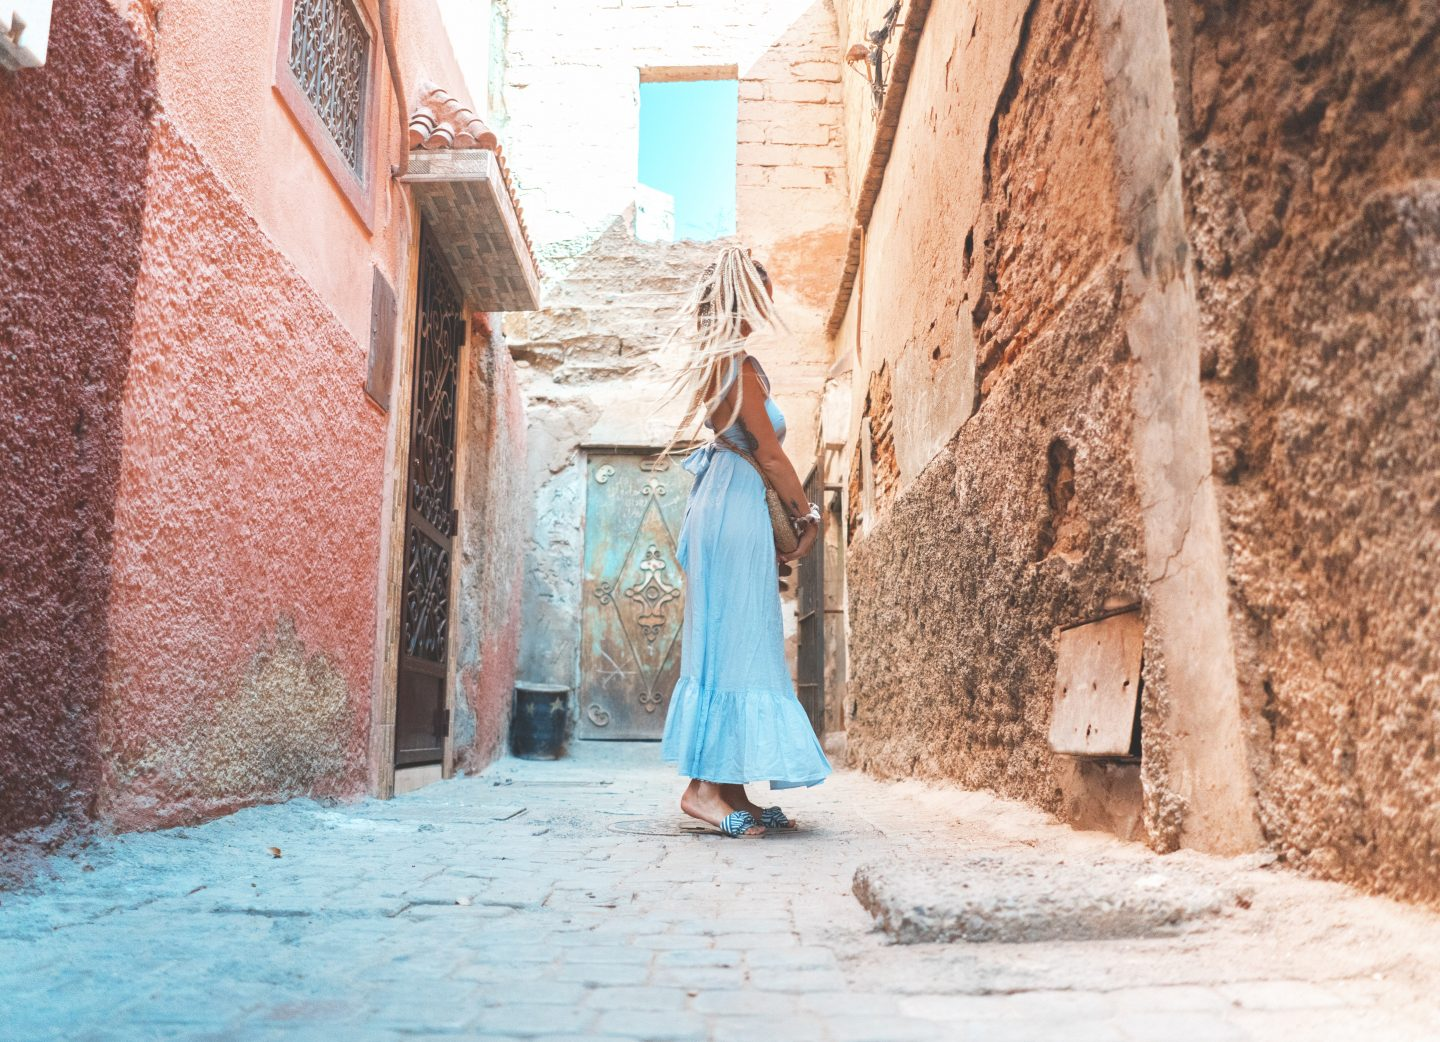 Staying Safe As A Solo Female Traveler In Morocco